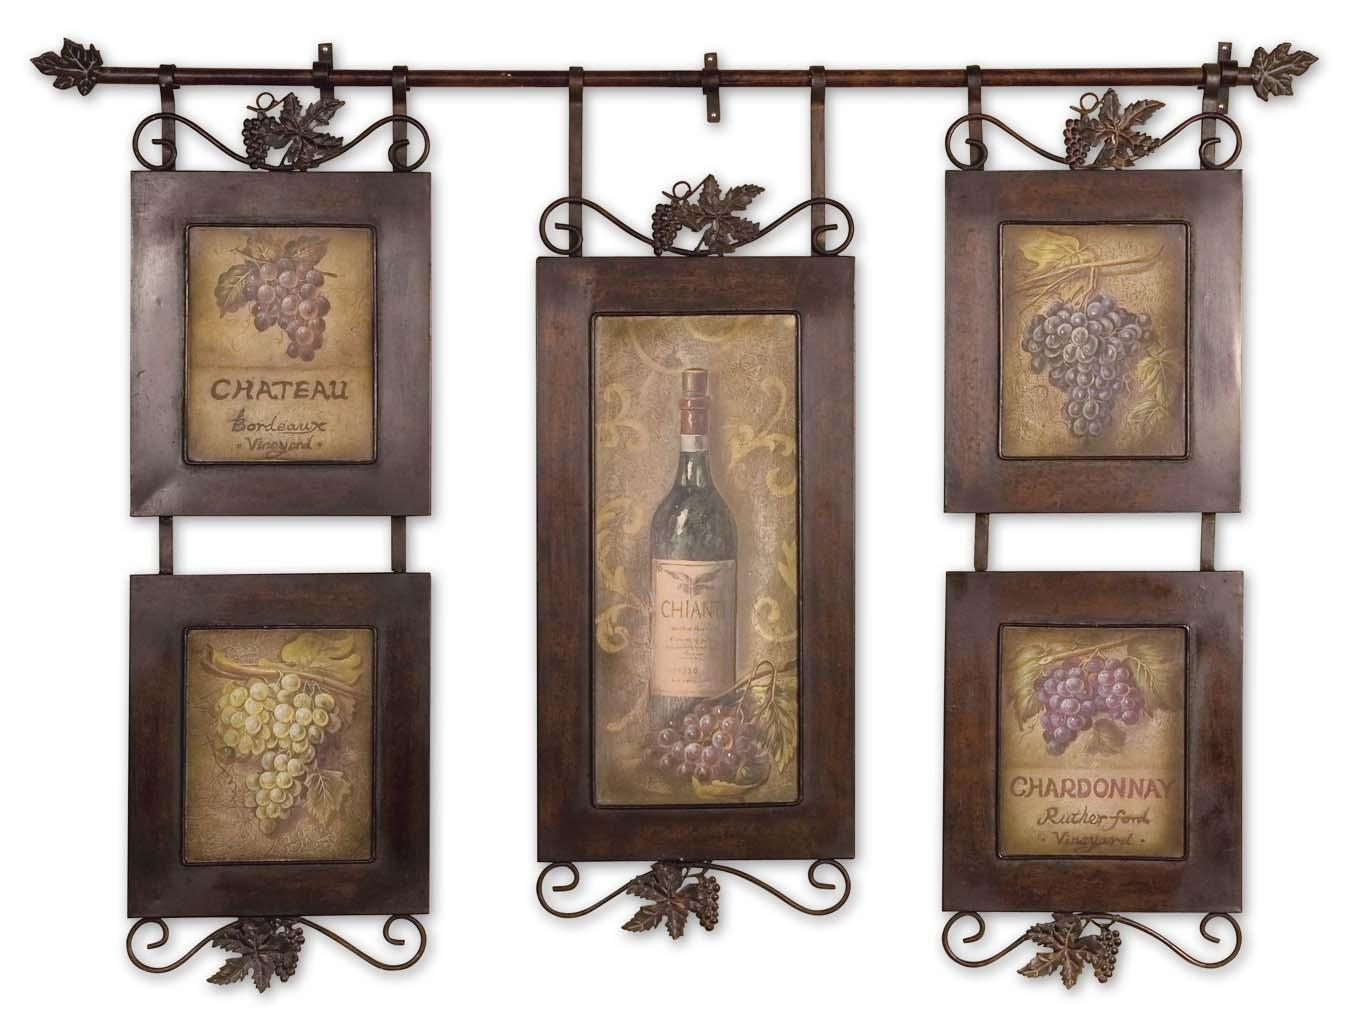 Uttermost Hanging Wine Framed Art 50791 With Regard To Tuscan Wall Art Decor (View 11 of 20)